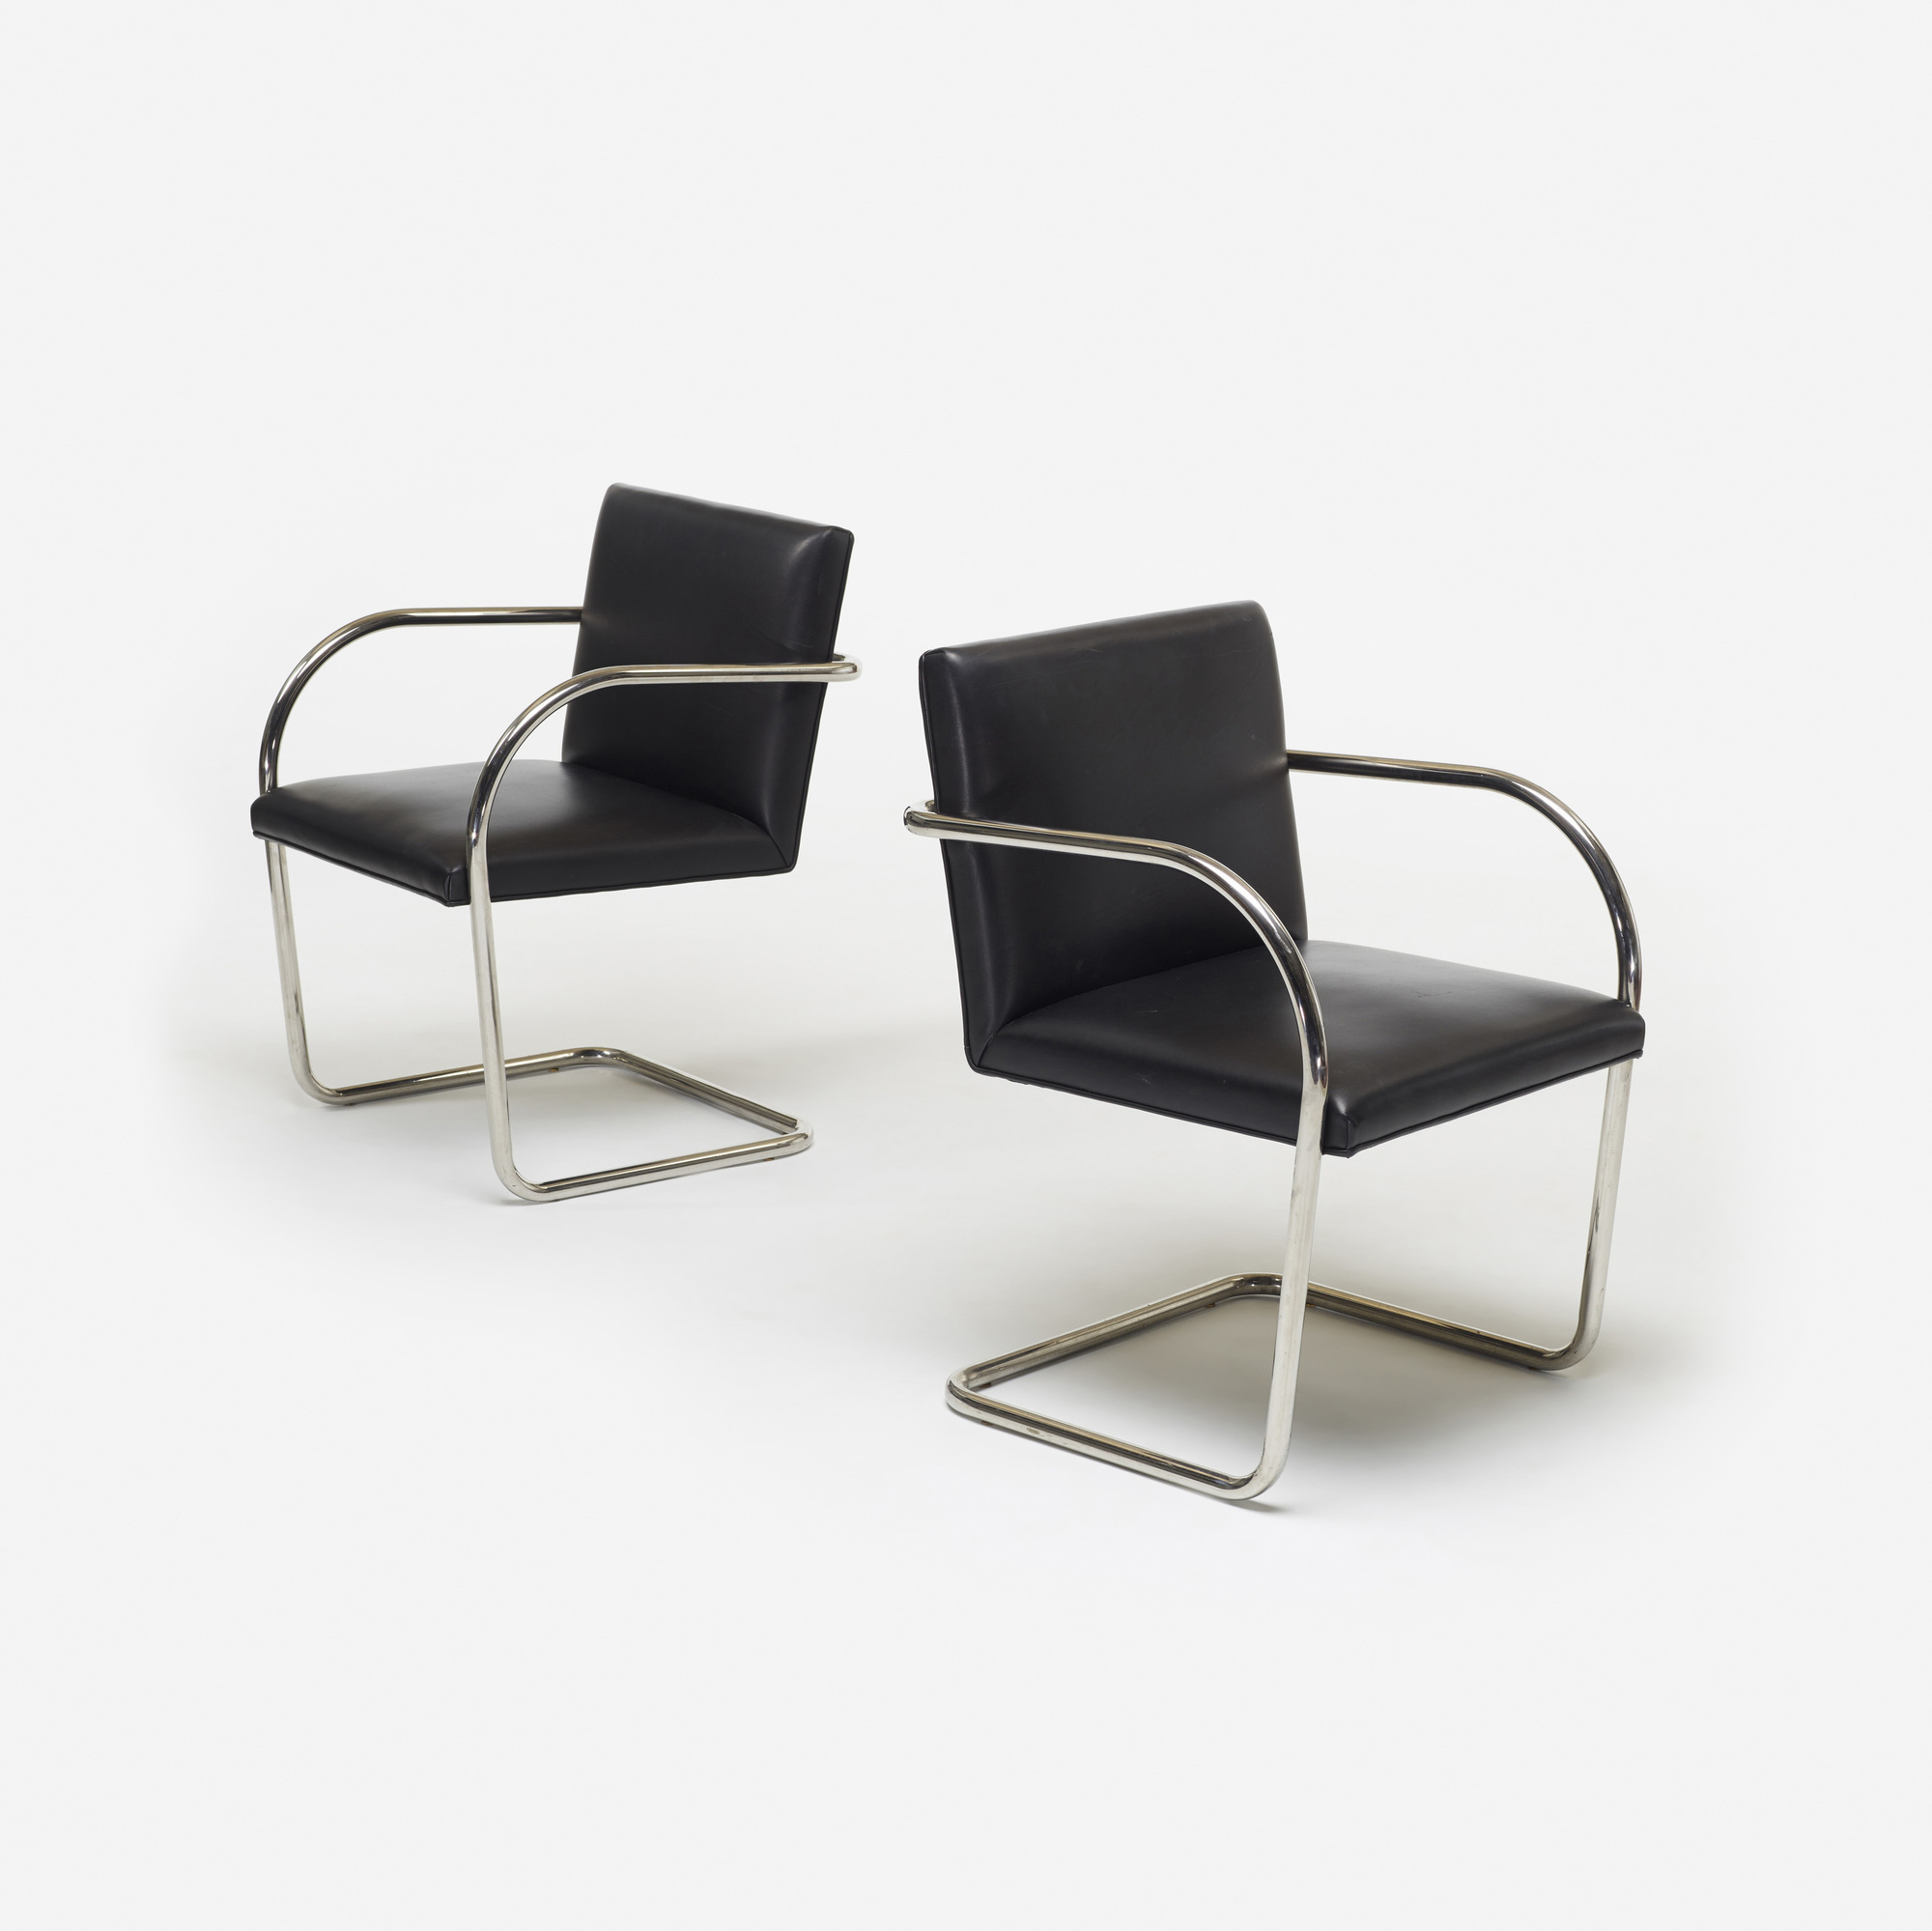 238: Ludwig Mies van der Rohe / set of twelve Brno chairs from The Arts Club of Chicago (2 of 4)